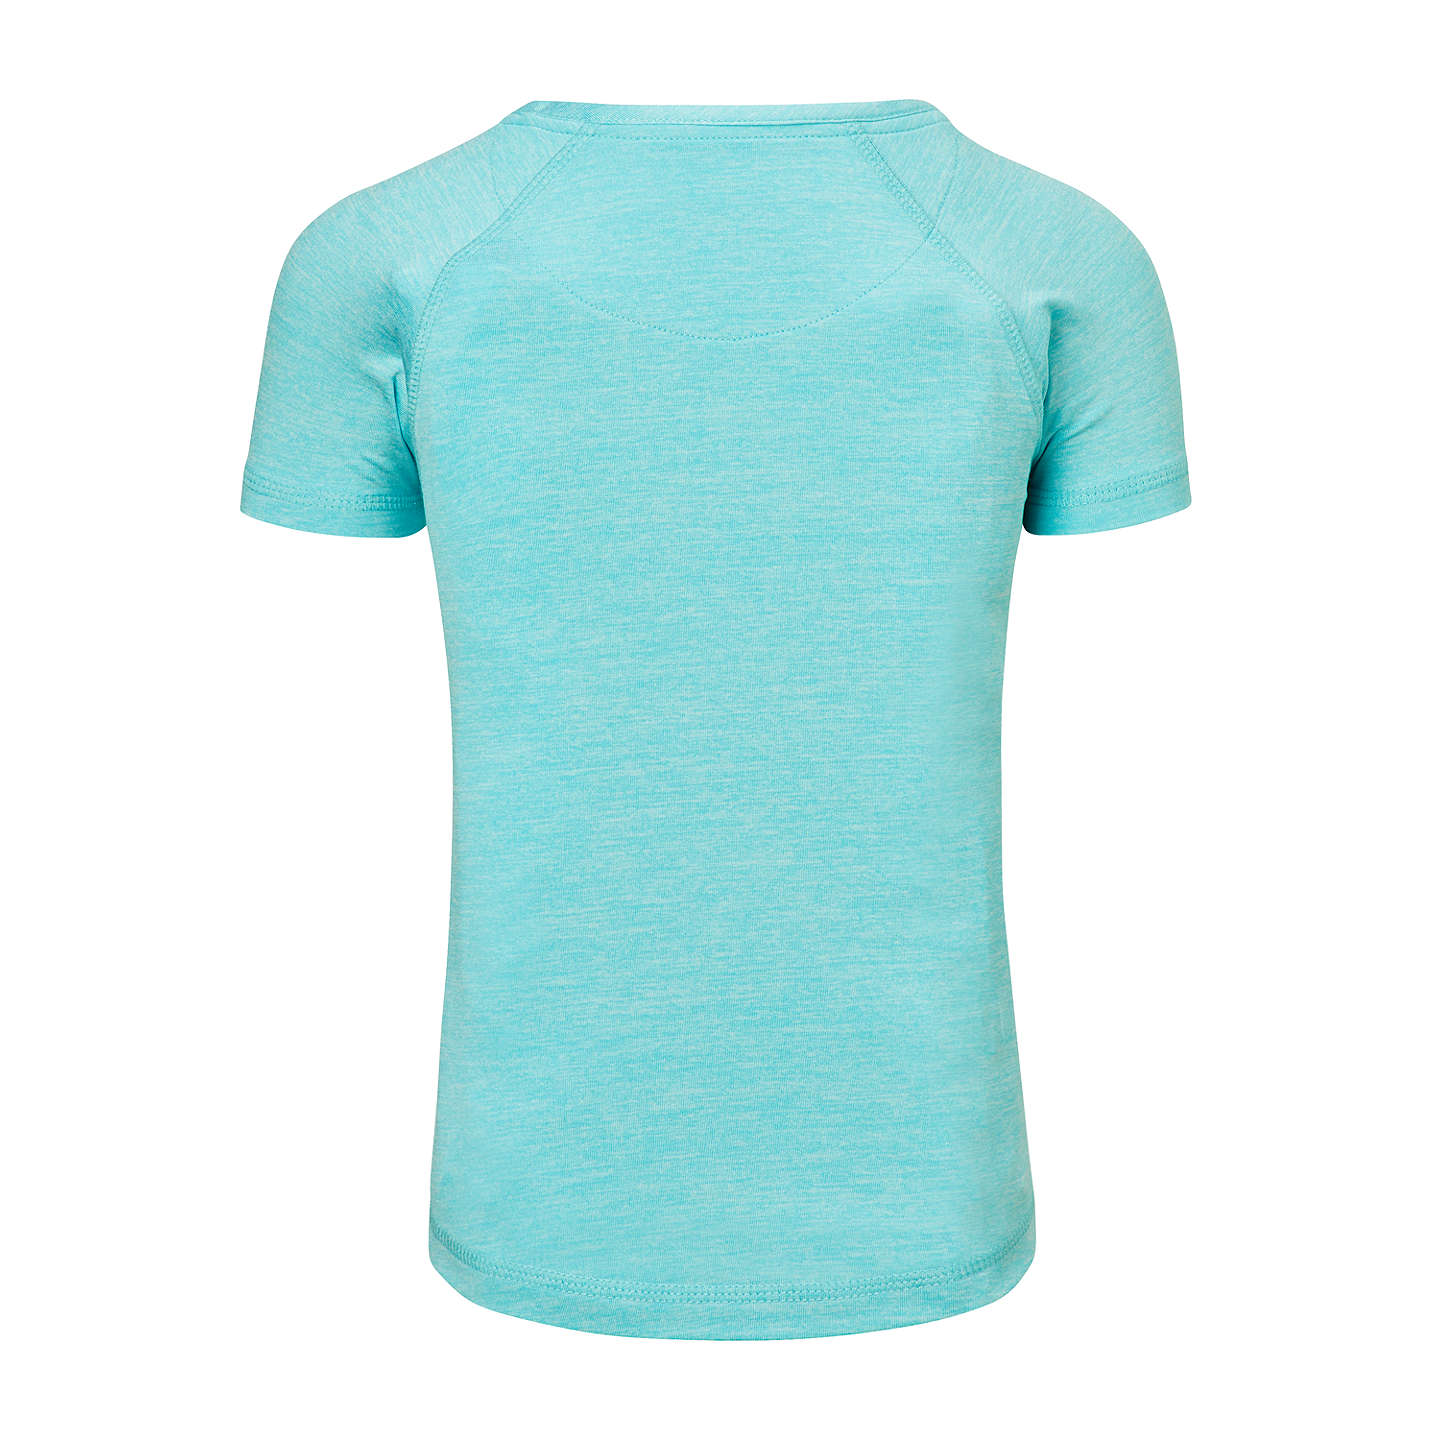 BuyJohn Lewis Girls' Short Sleeve Sports T-Shirt, Turquoise, 3 years Online at johnlewis.com